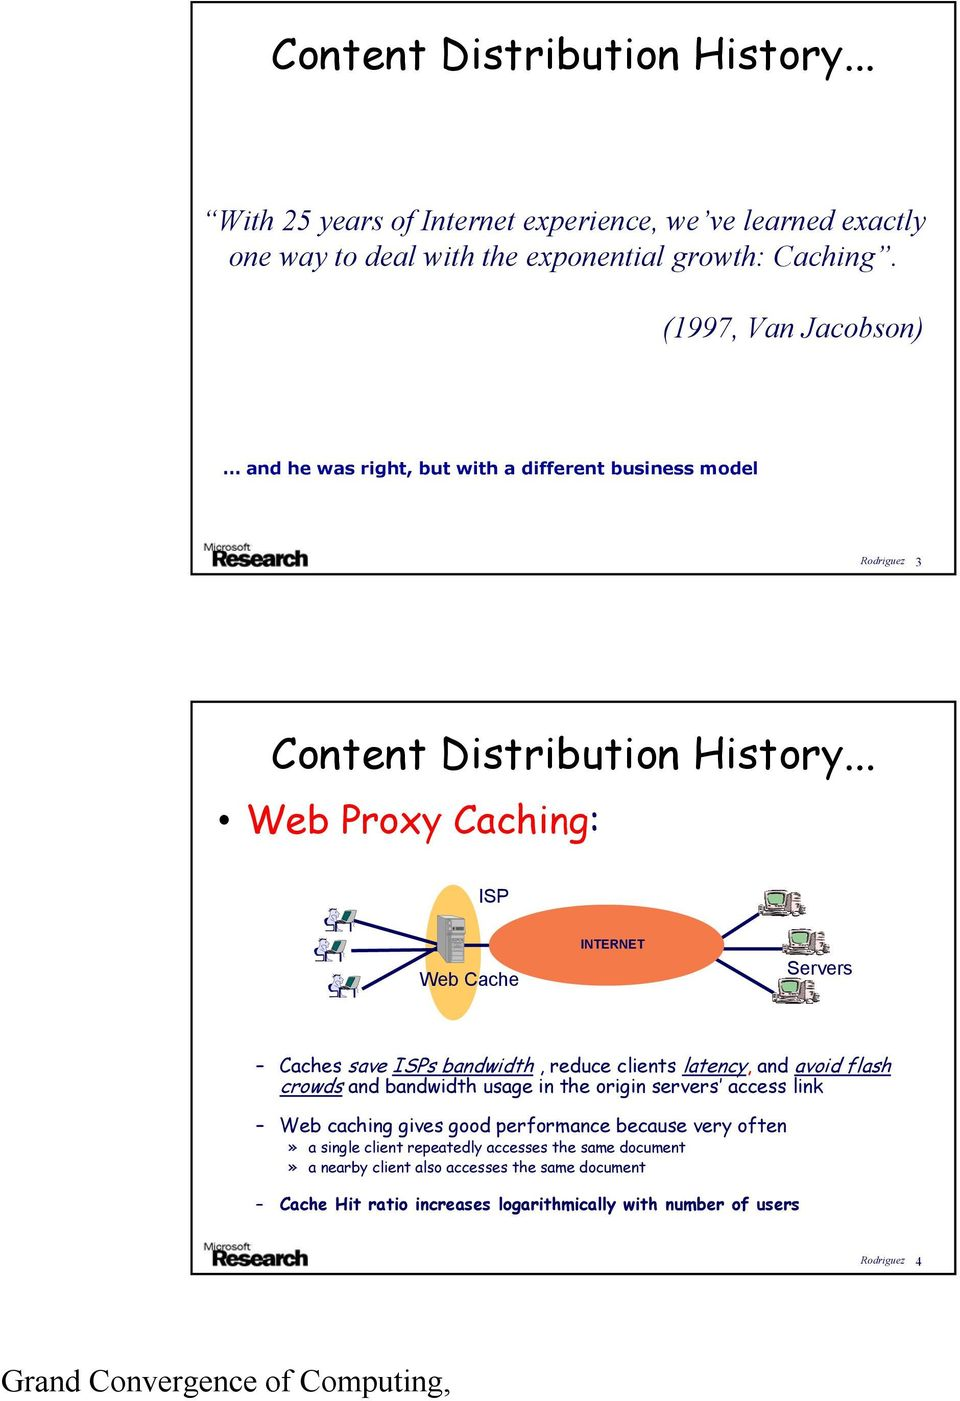 .. Web Proxy Caching: ISP Web Cache INTERNET Servers Caches save ISPs bandwidth, reduce clients latency, and avoid flash crowds and bandwidth usage in the origin